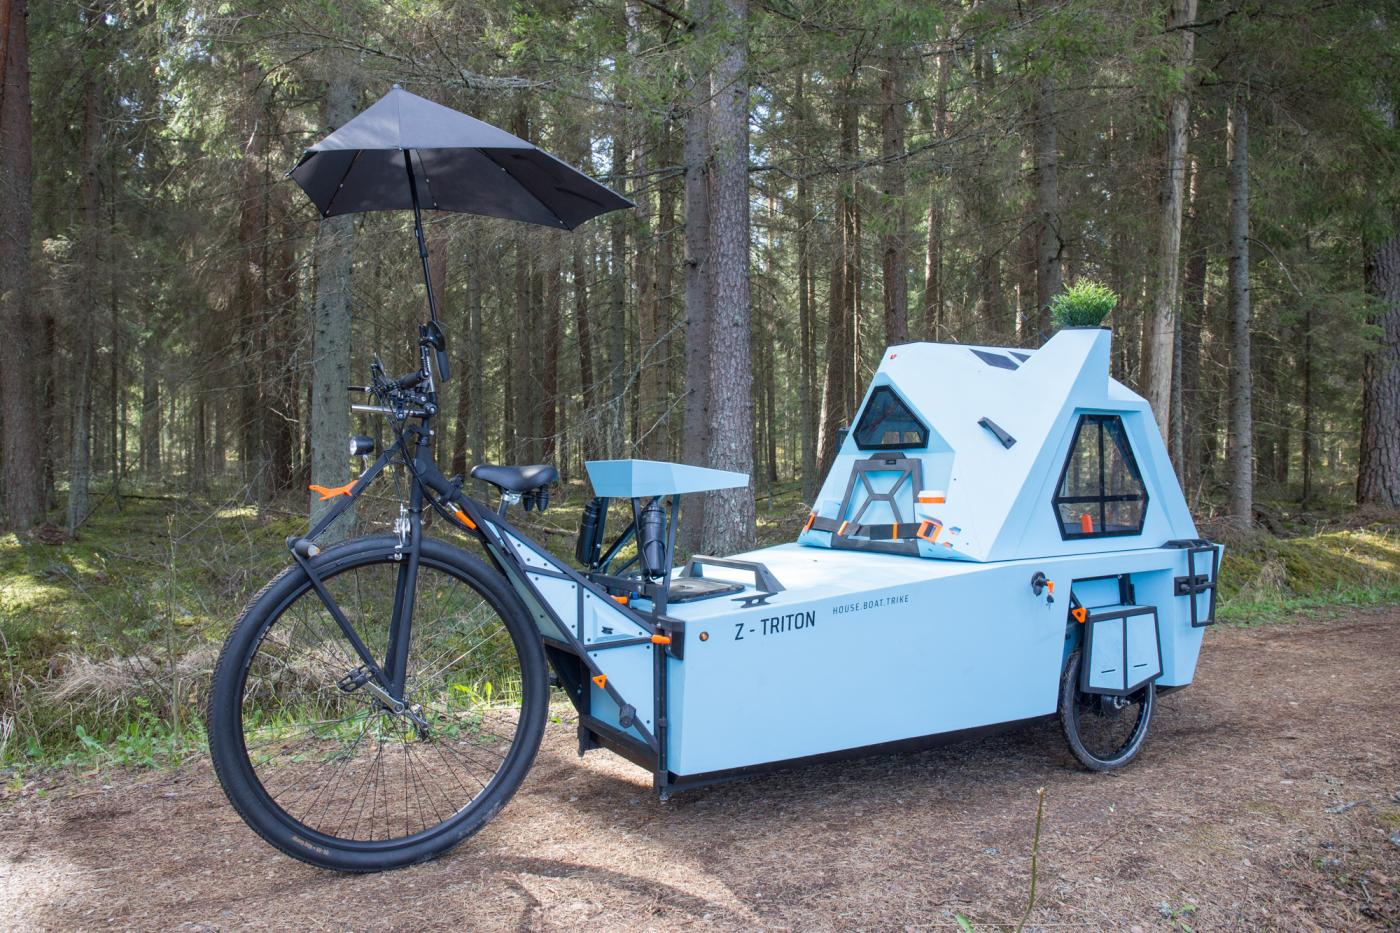 #Vanlife / Boatlife / Bikelife? Zeltini Z-Triton Amphibious E-Tricycle Camper is out of this world